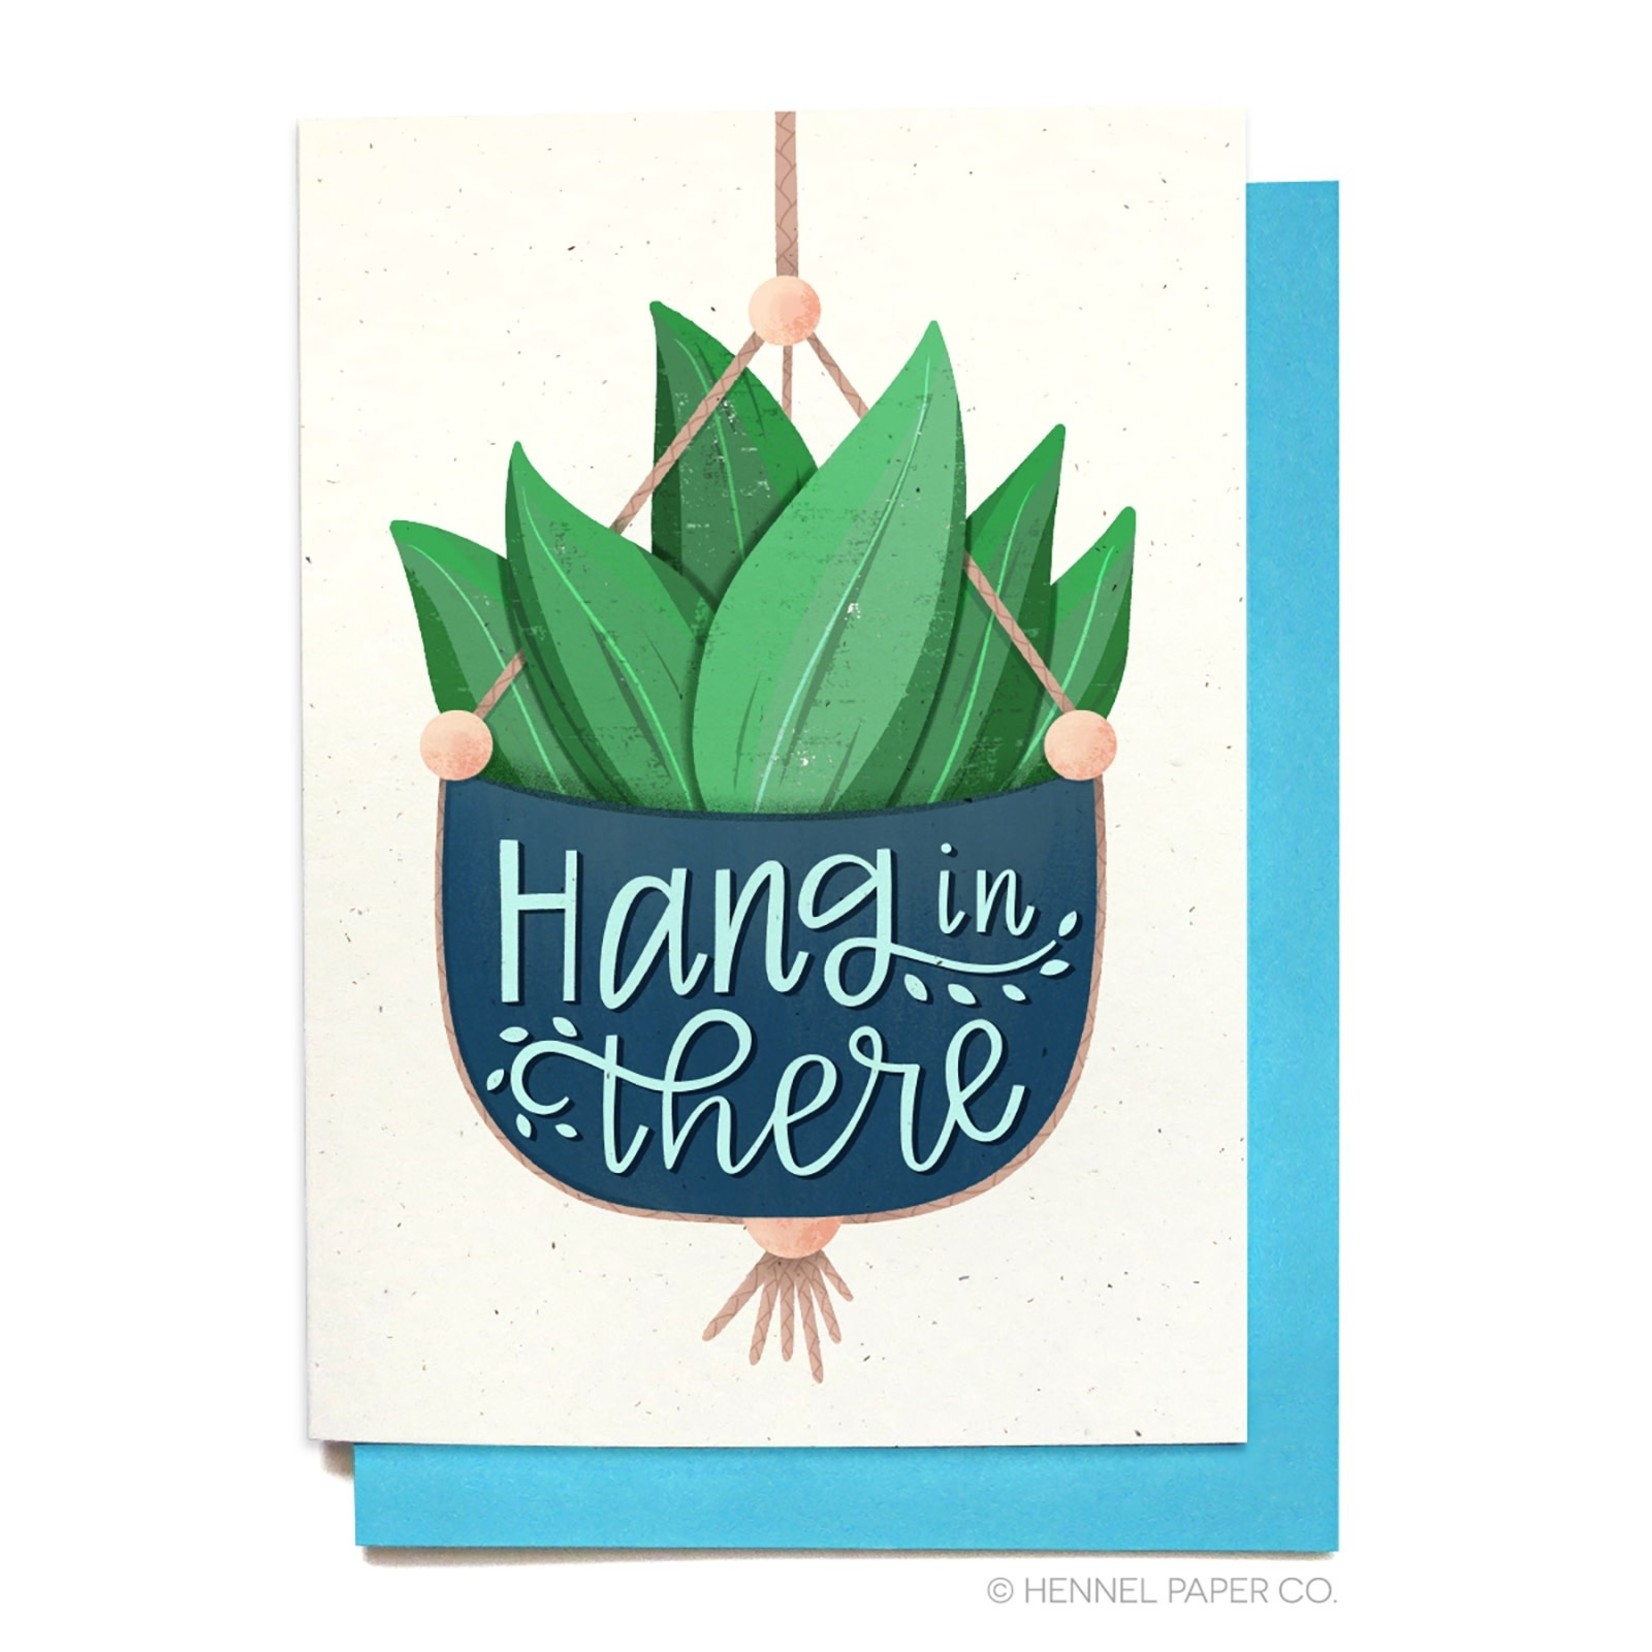 Hennel Paper Co. Hang in there card